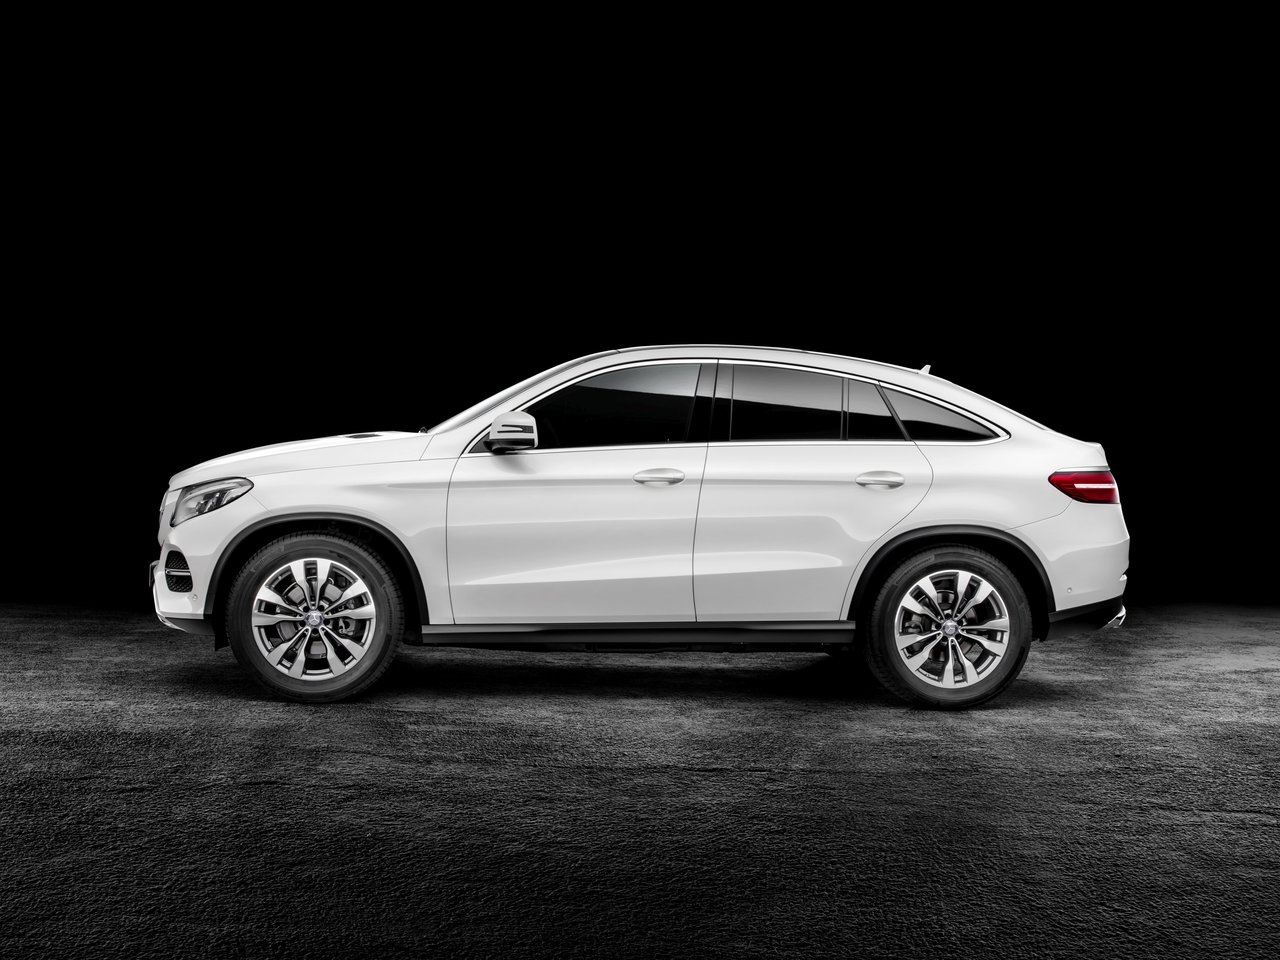 Снимки: Mercedes-benz GLE Coupe